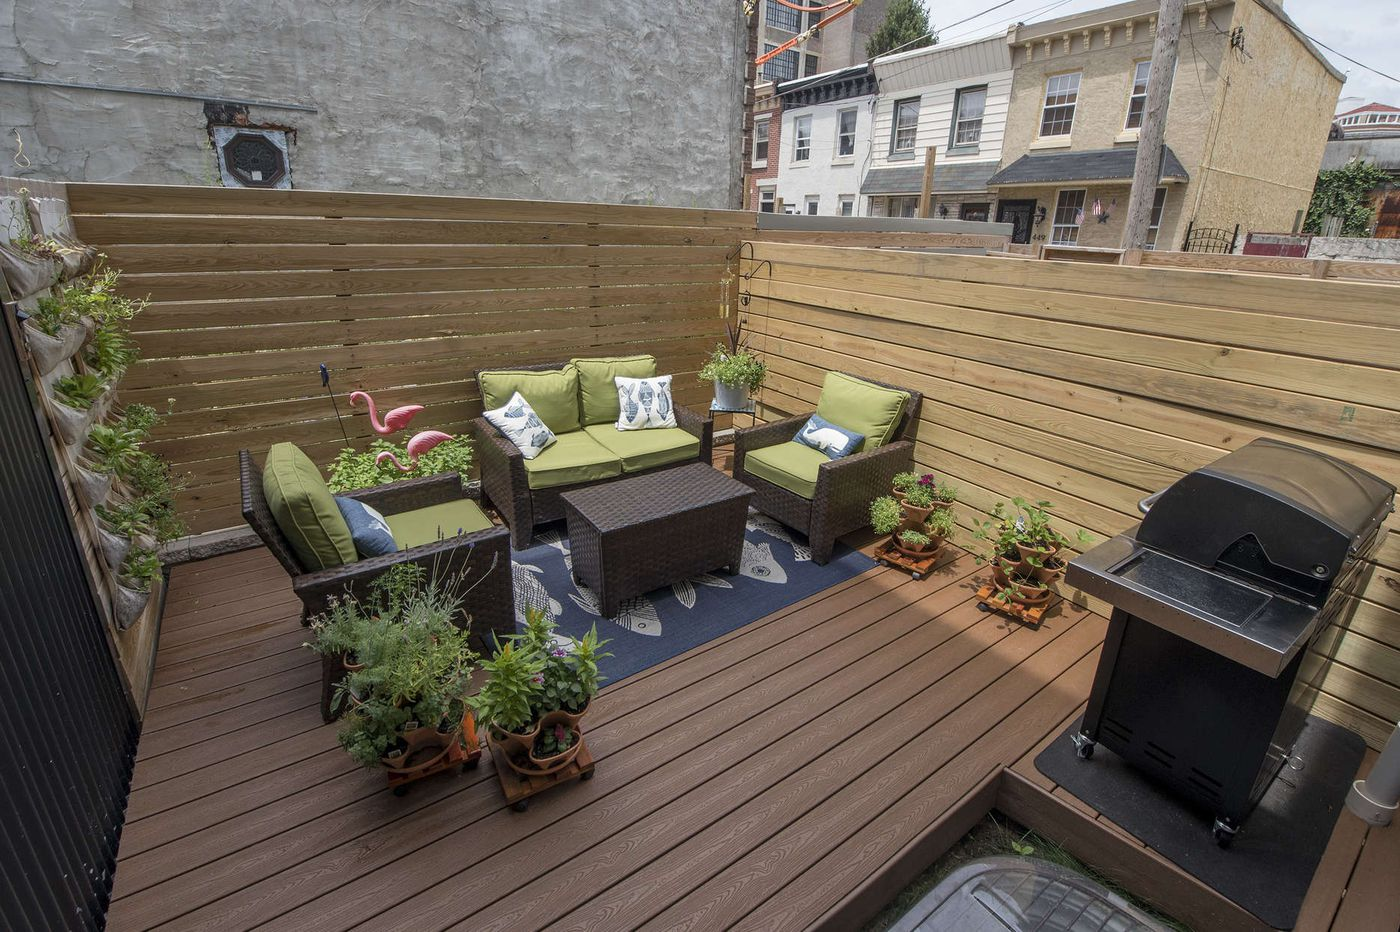 Nine improvements that can help you get more out of your outdoor space